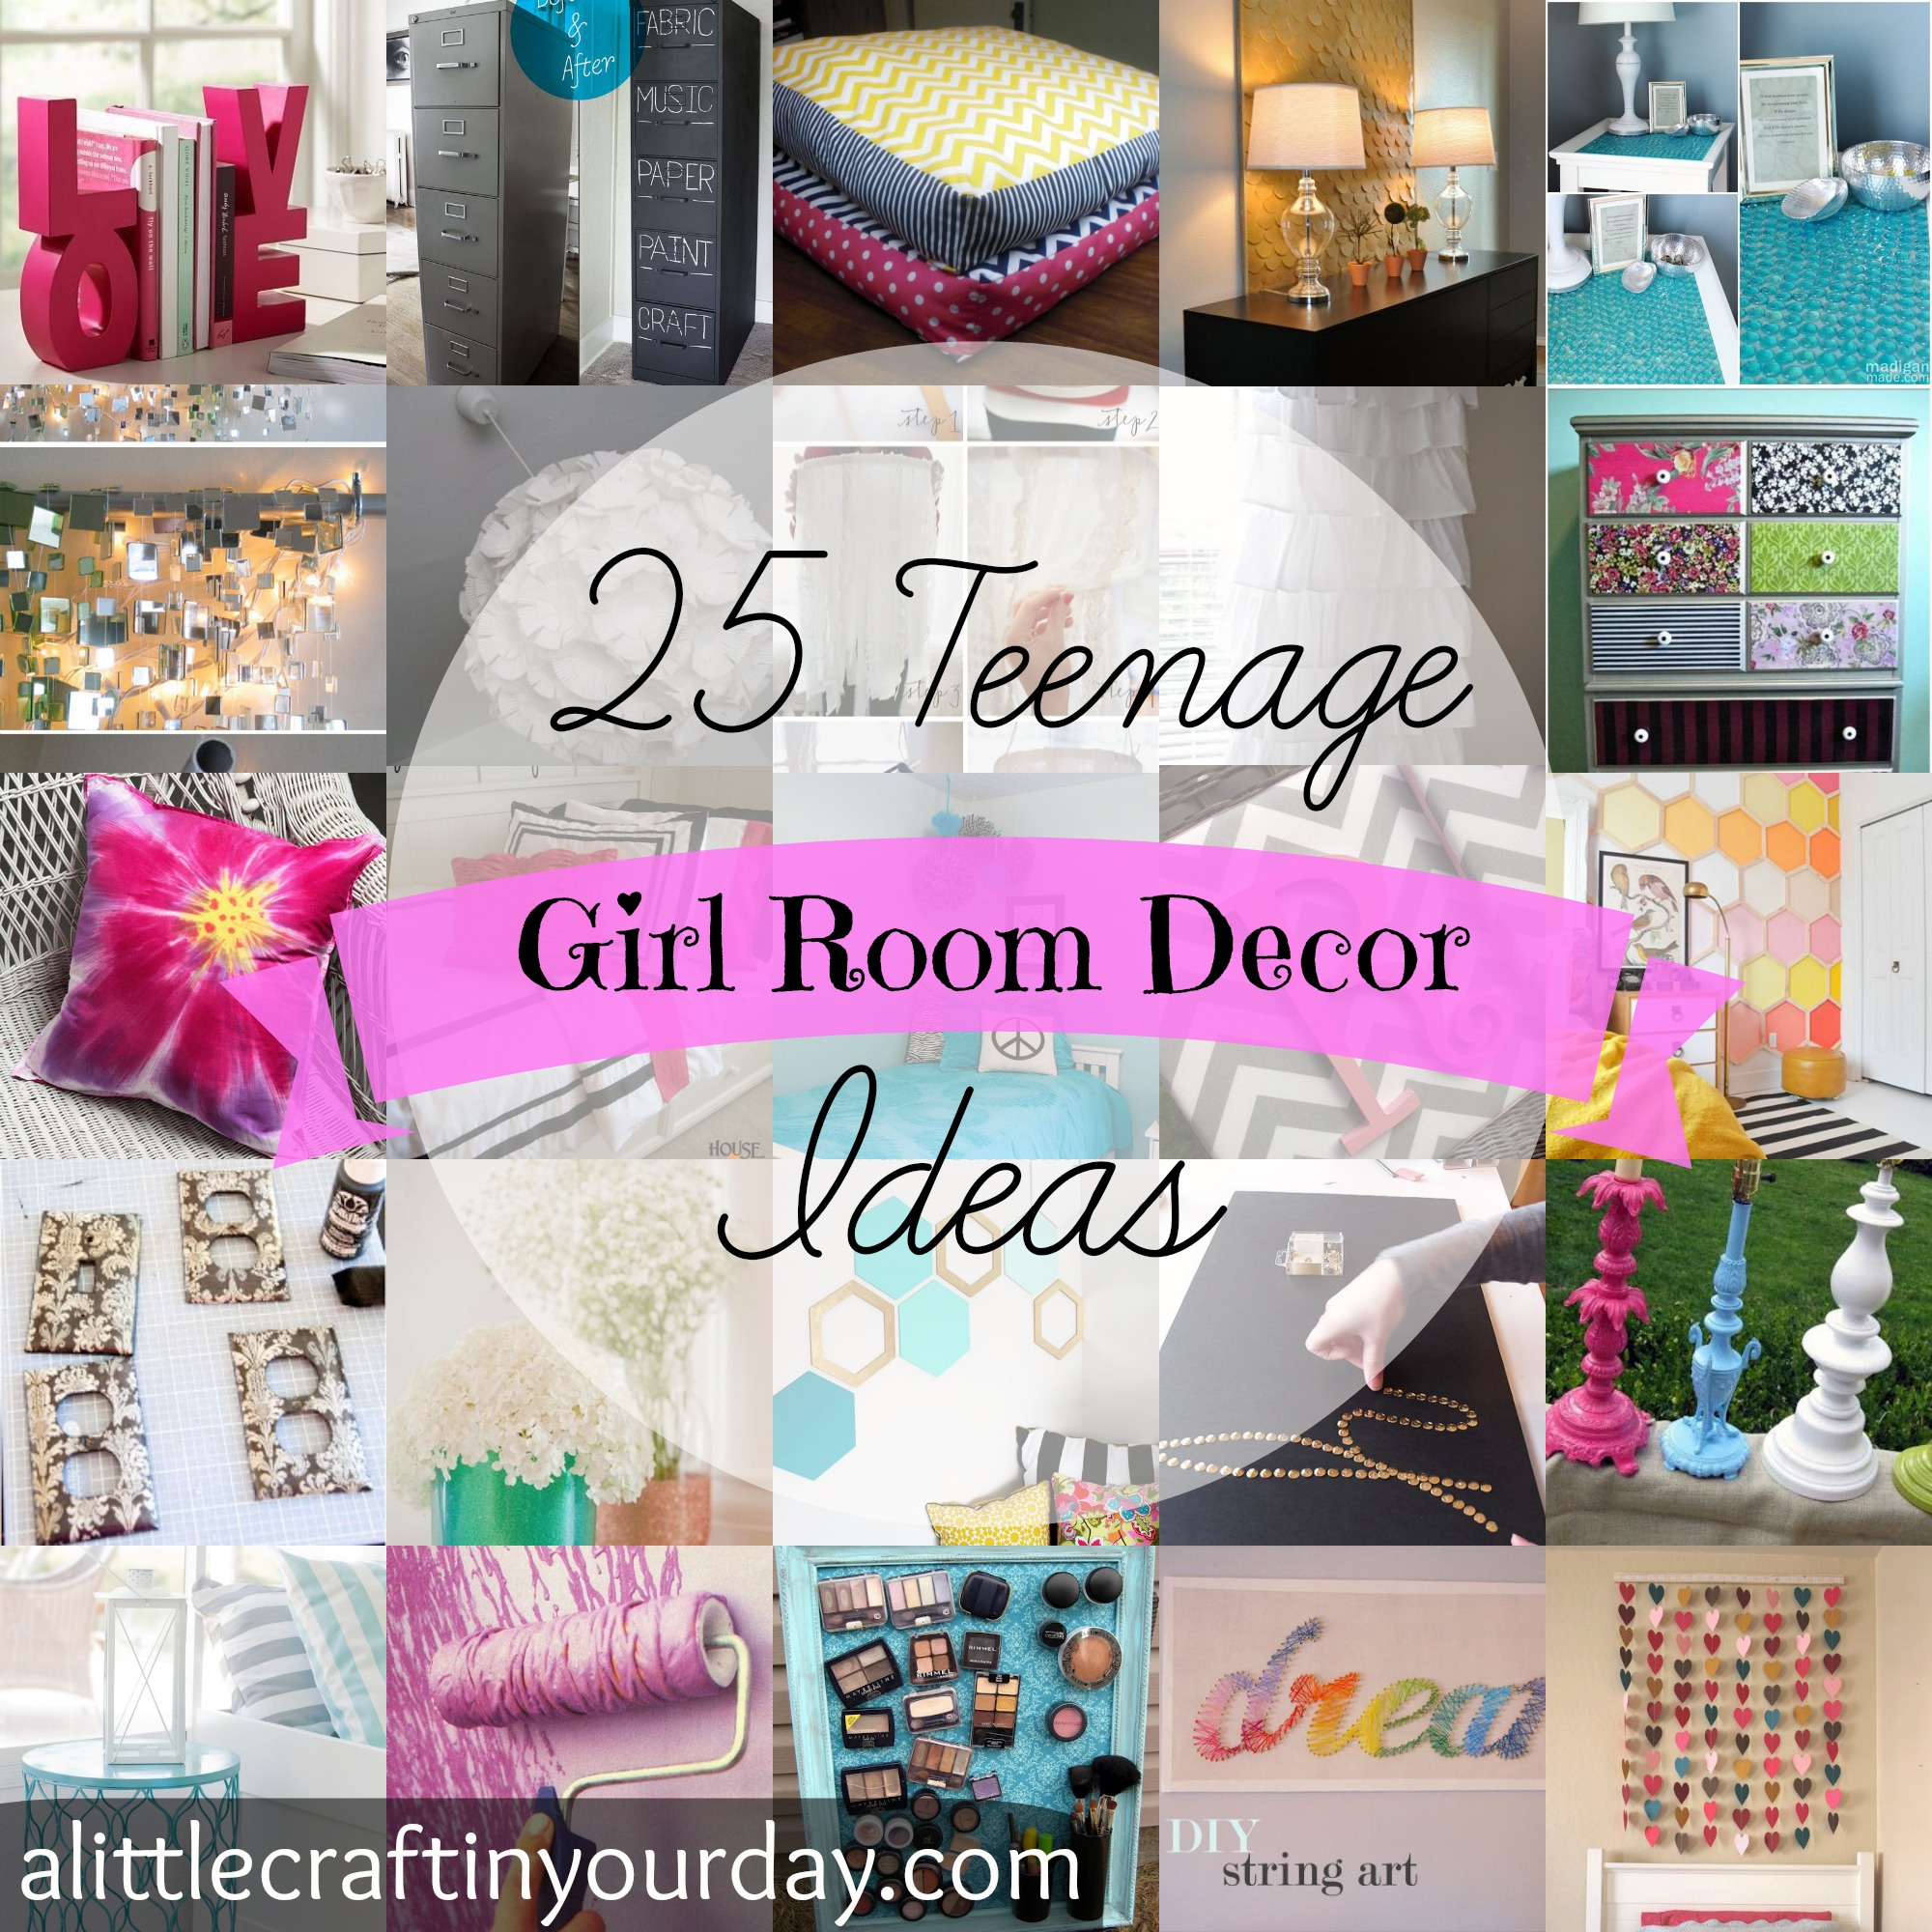 Diy teen girl room decor ideas - Room decoration ideas for teenagers ...